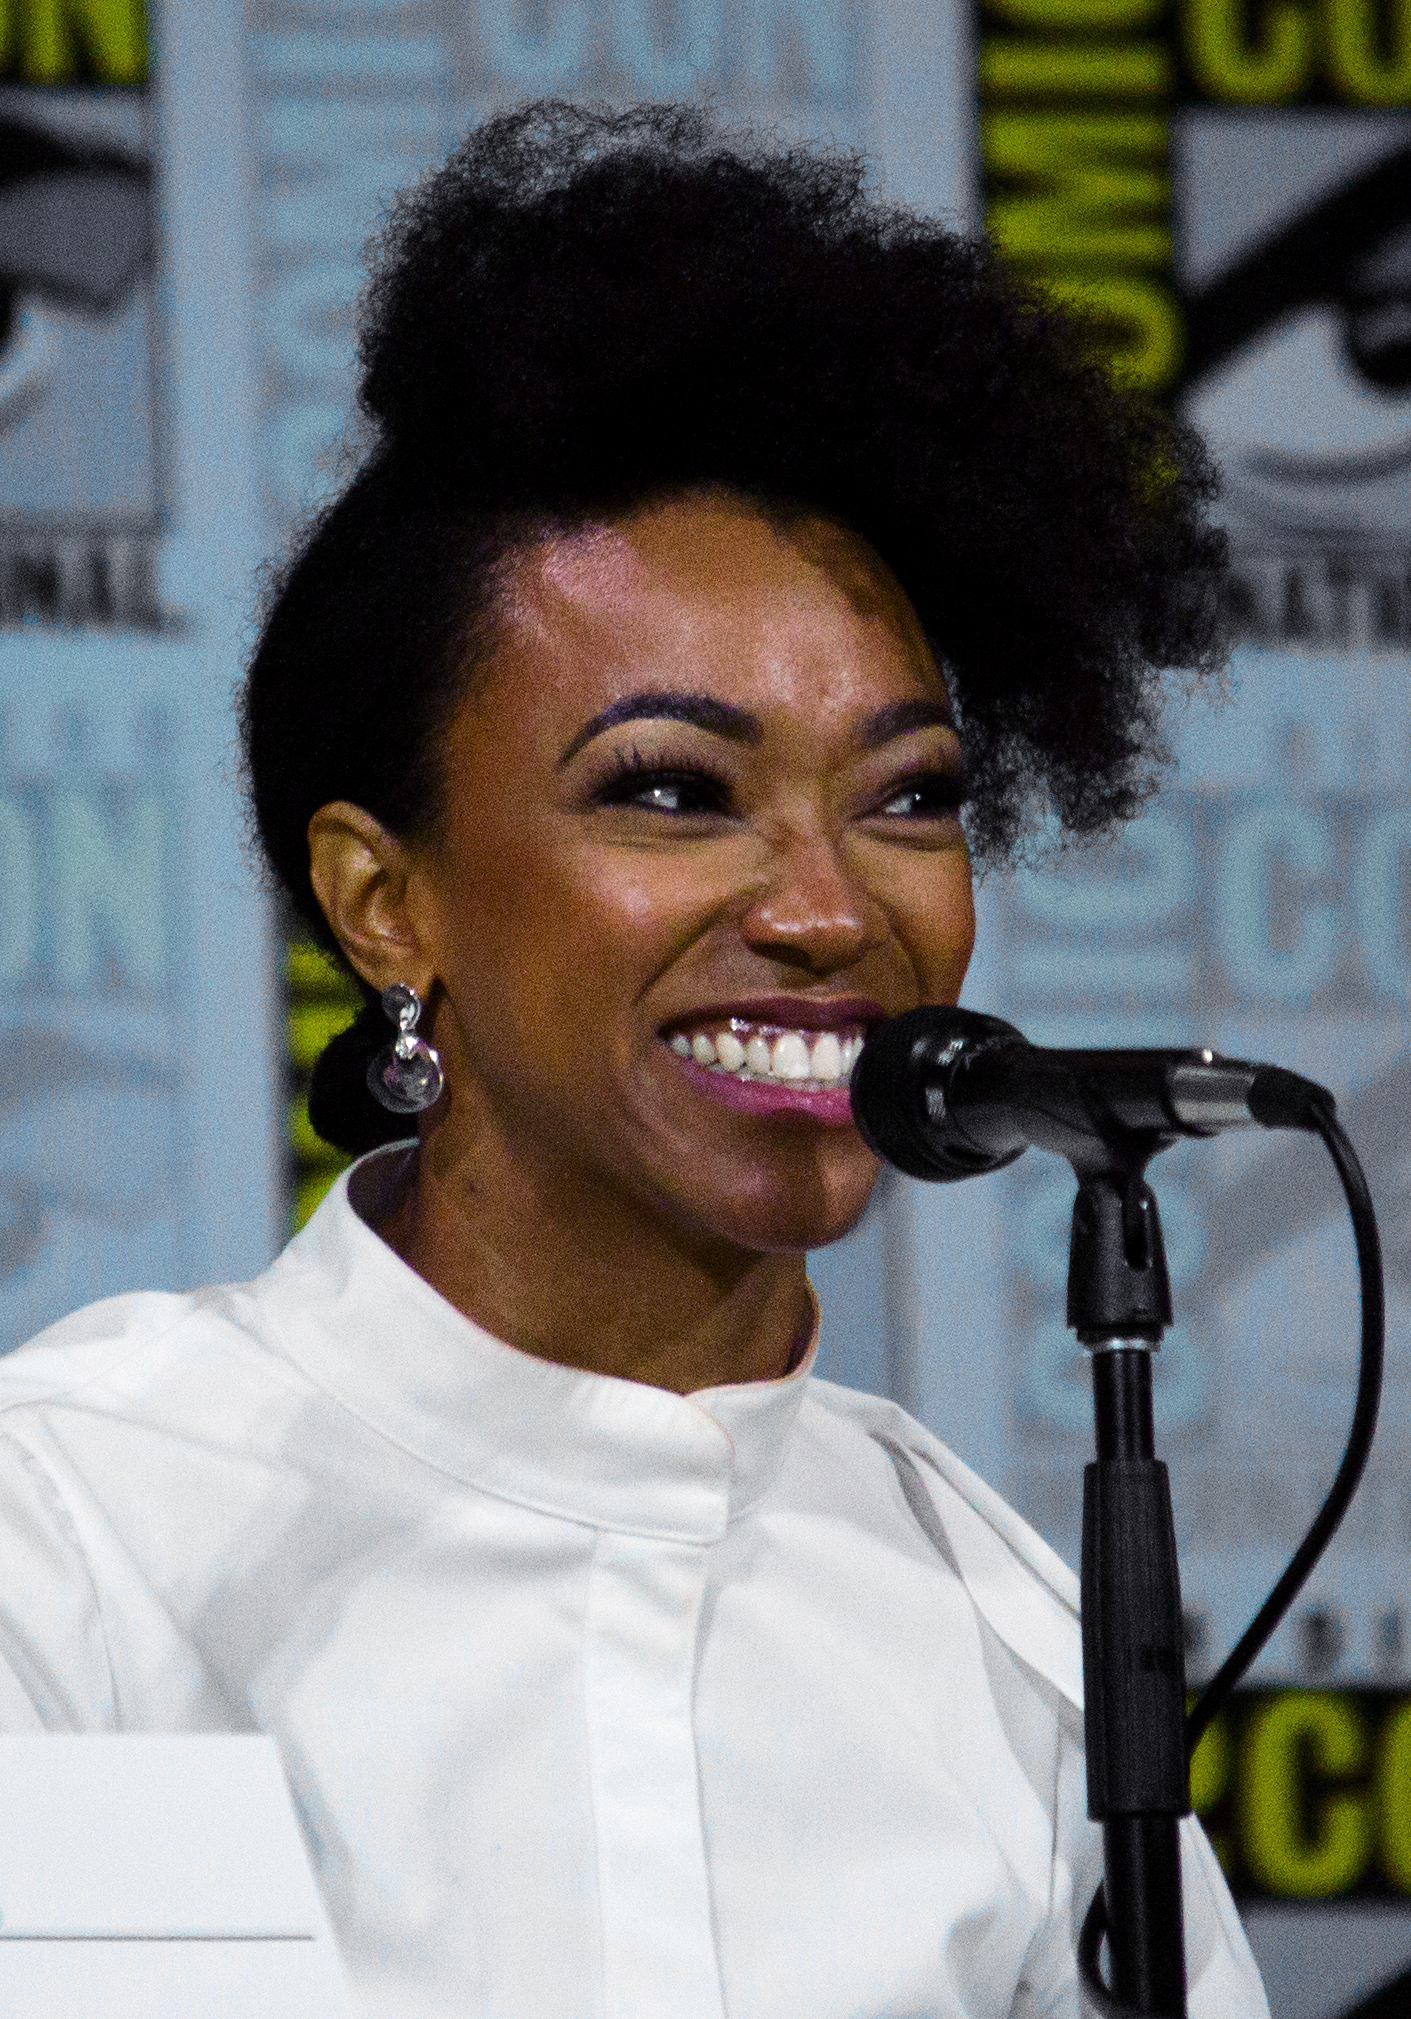 The 33-year old daughter of father (?) and mother(?) Sonequa Martin-Green in 2018 photo. Sonequa Martin-Green earned a  million dollar salary - leaving the net worth at 1 million in 2018